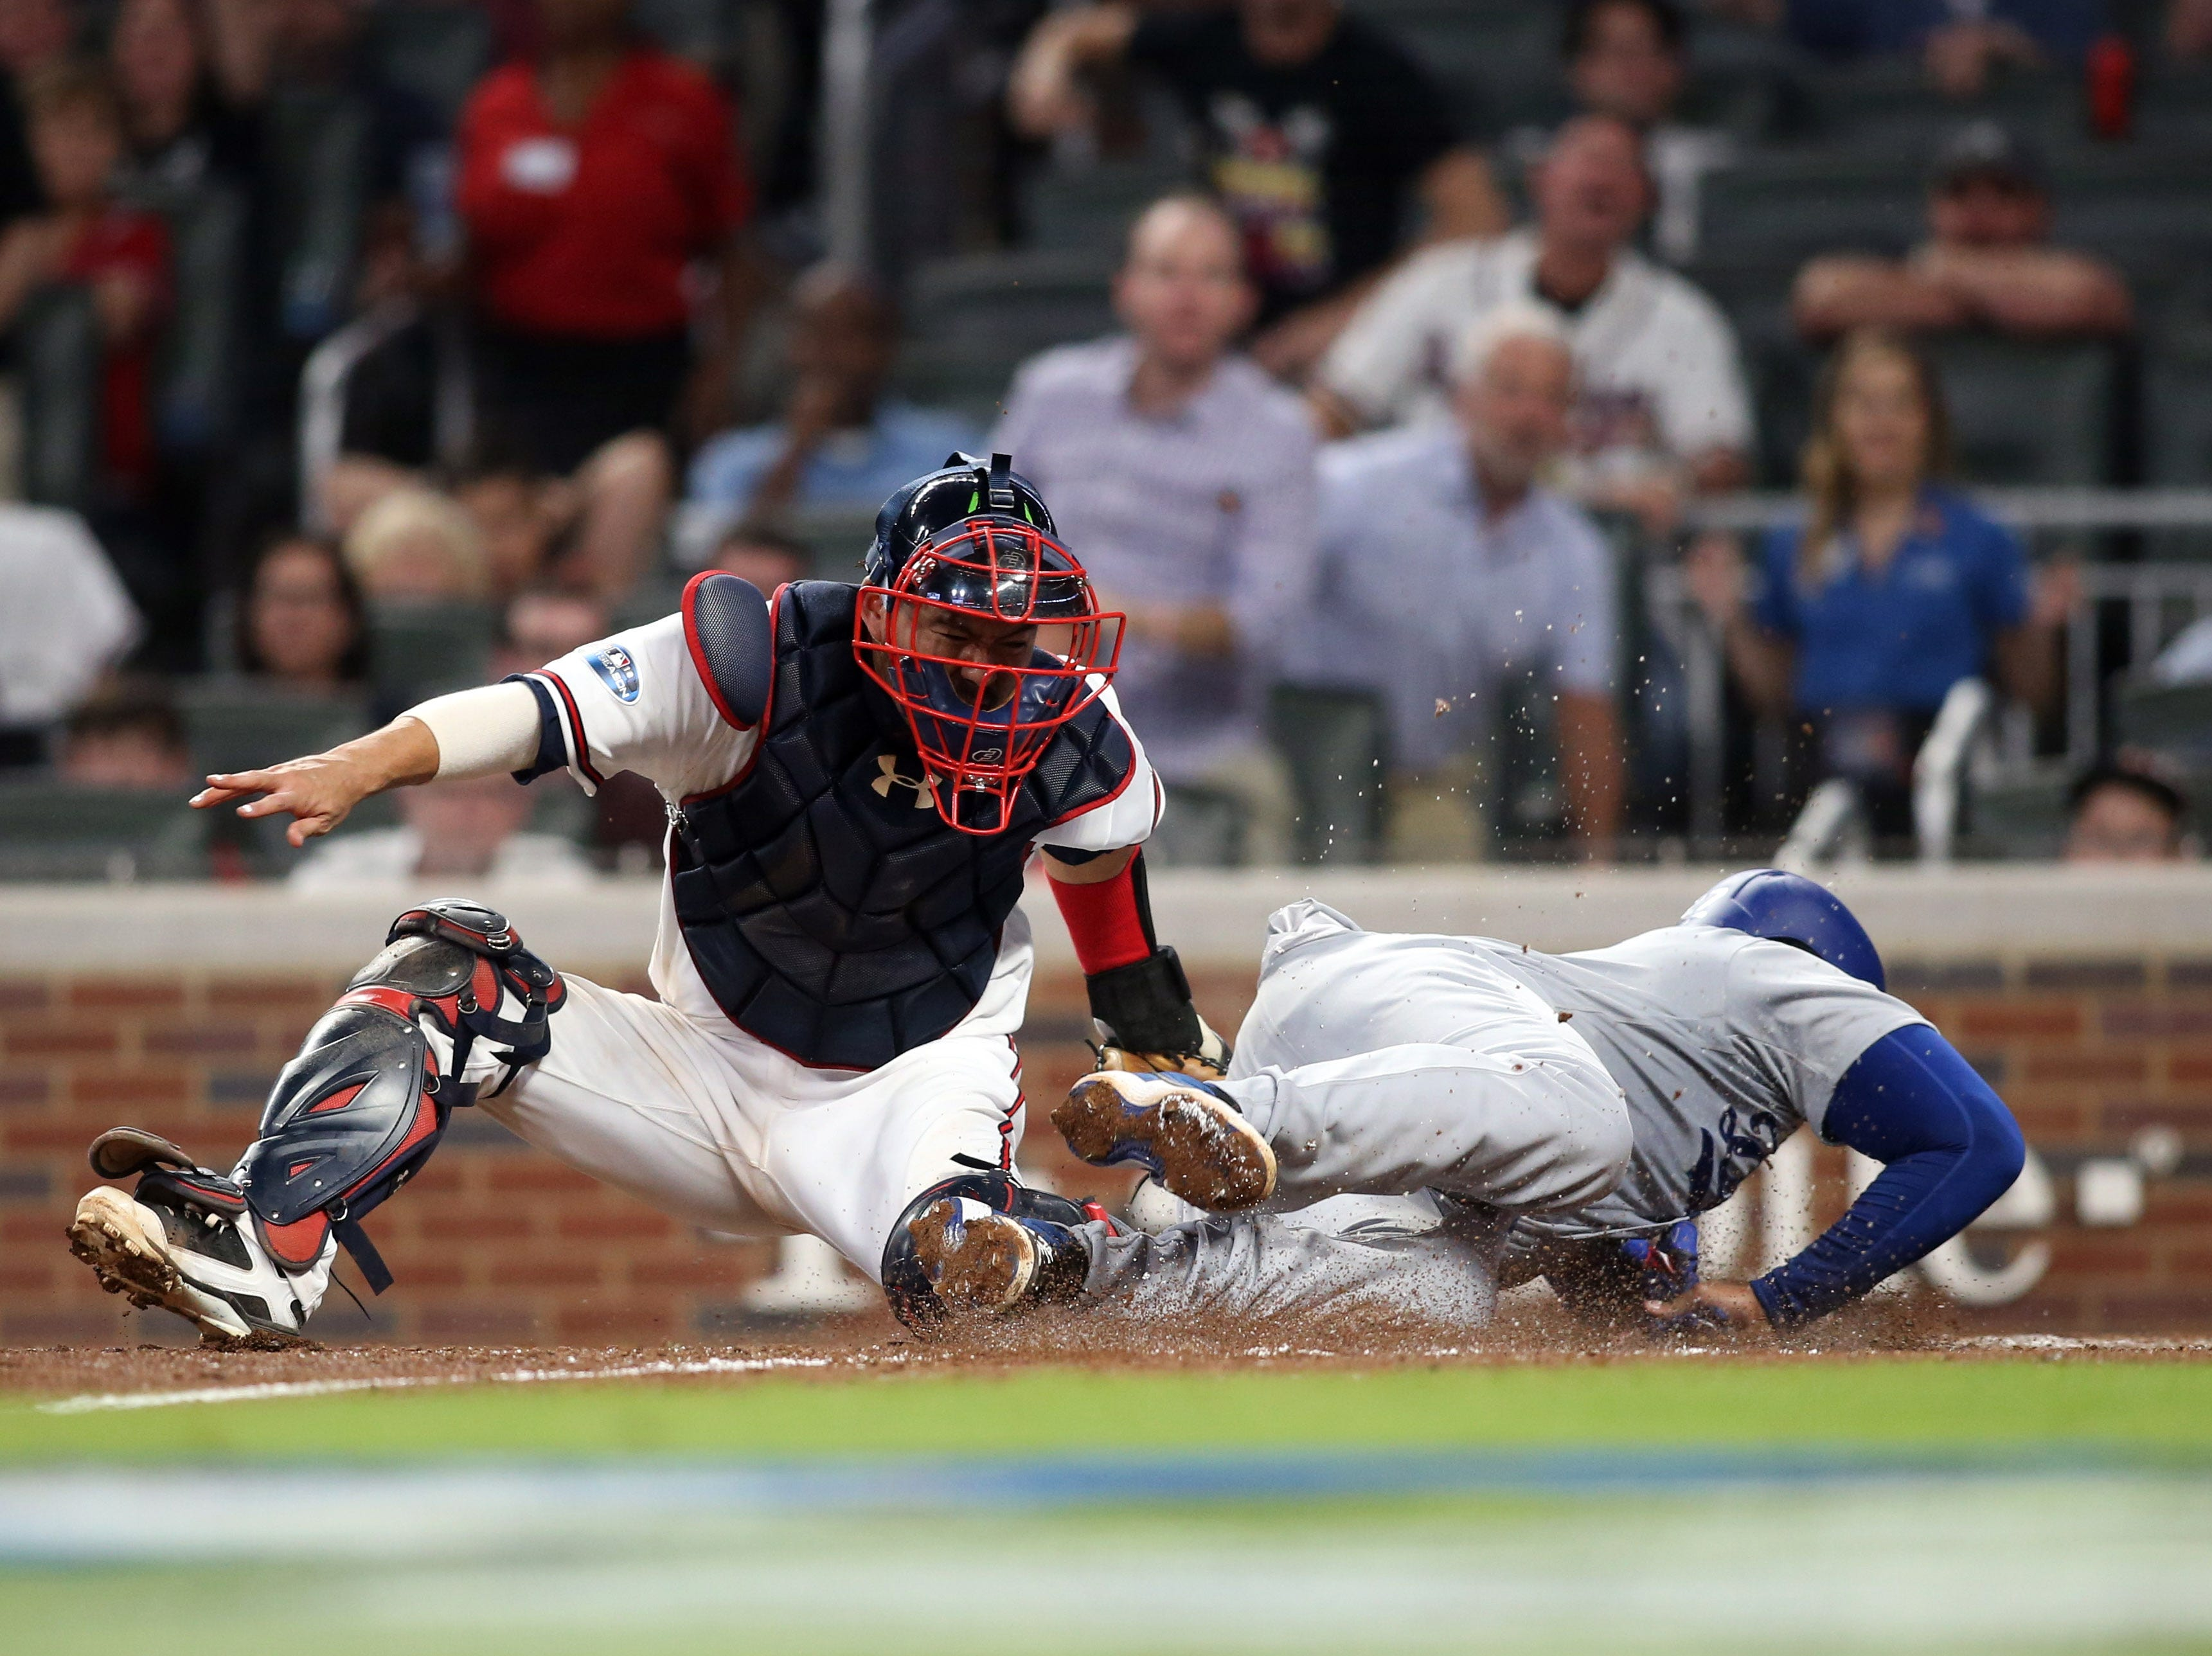 NLDS Game 3: Braves catcher Kurt Suzuki tags out Matt Kemp at the plate in the sixth inning.